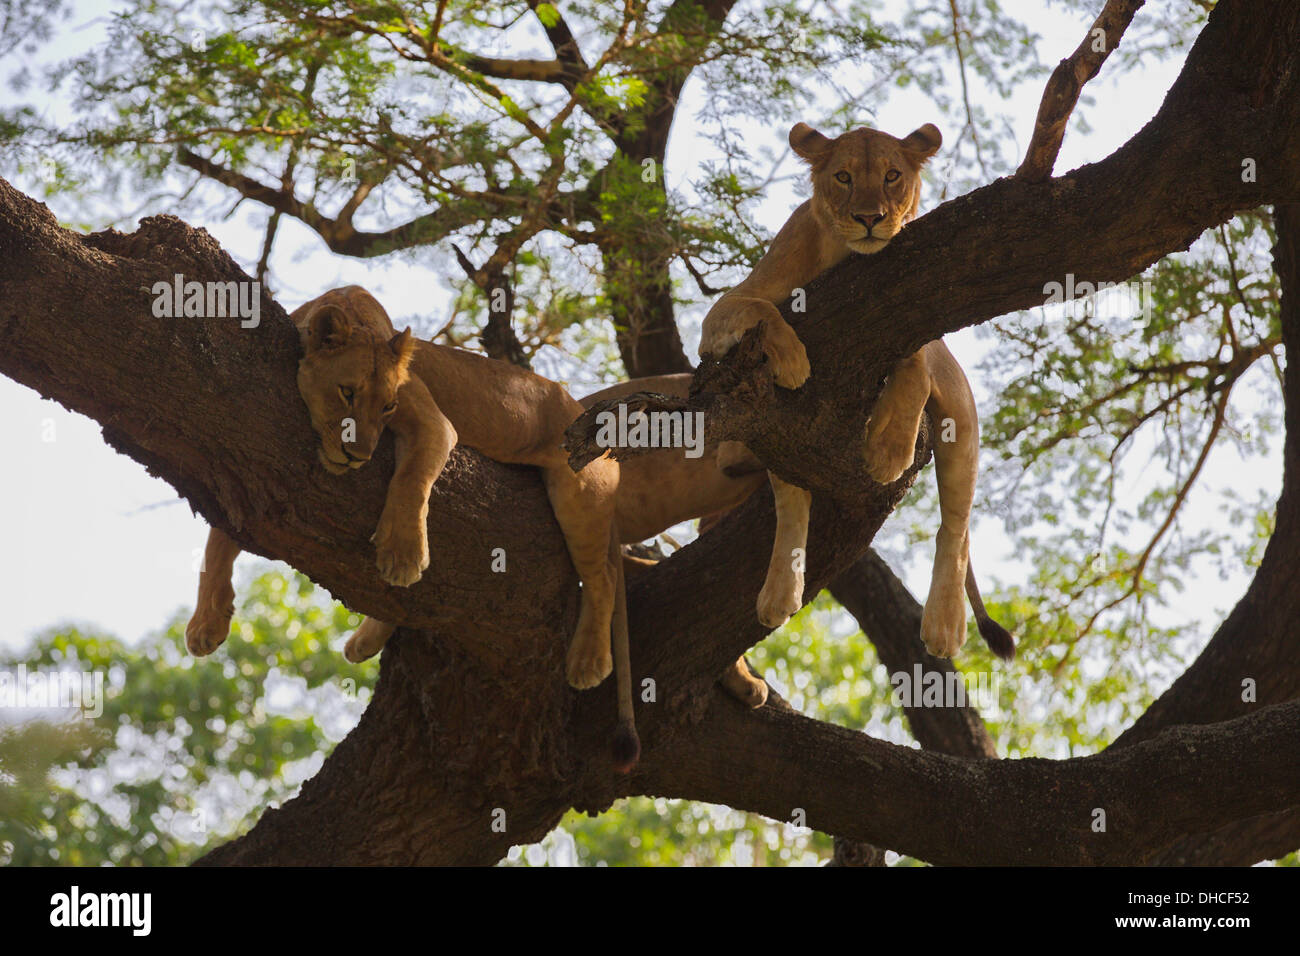 African Lion resting in tree. Lake Manyara National Park. Panthera leo. Tanzania, Africa. King of the Jungle. Mane. Pride. - Stock Image